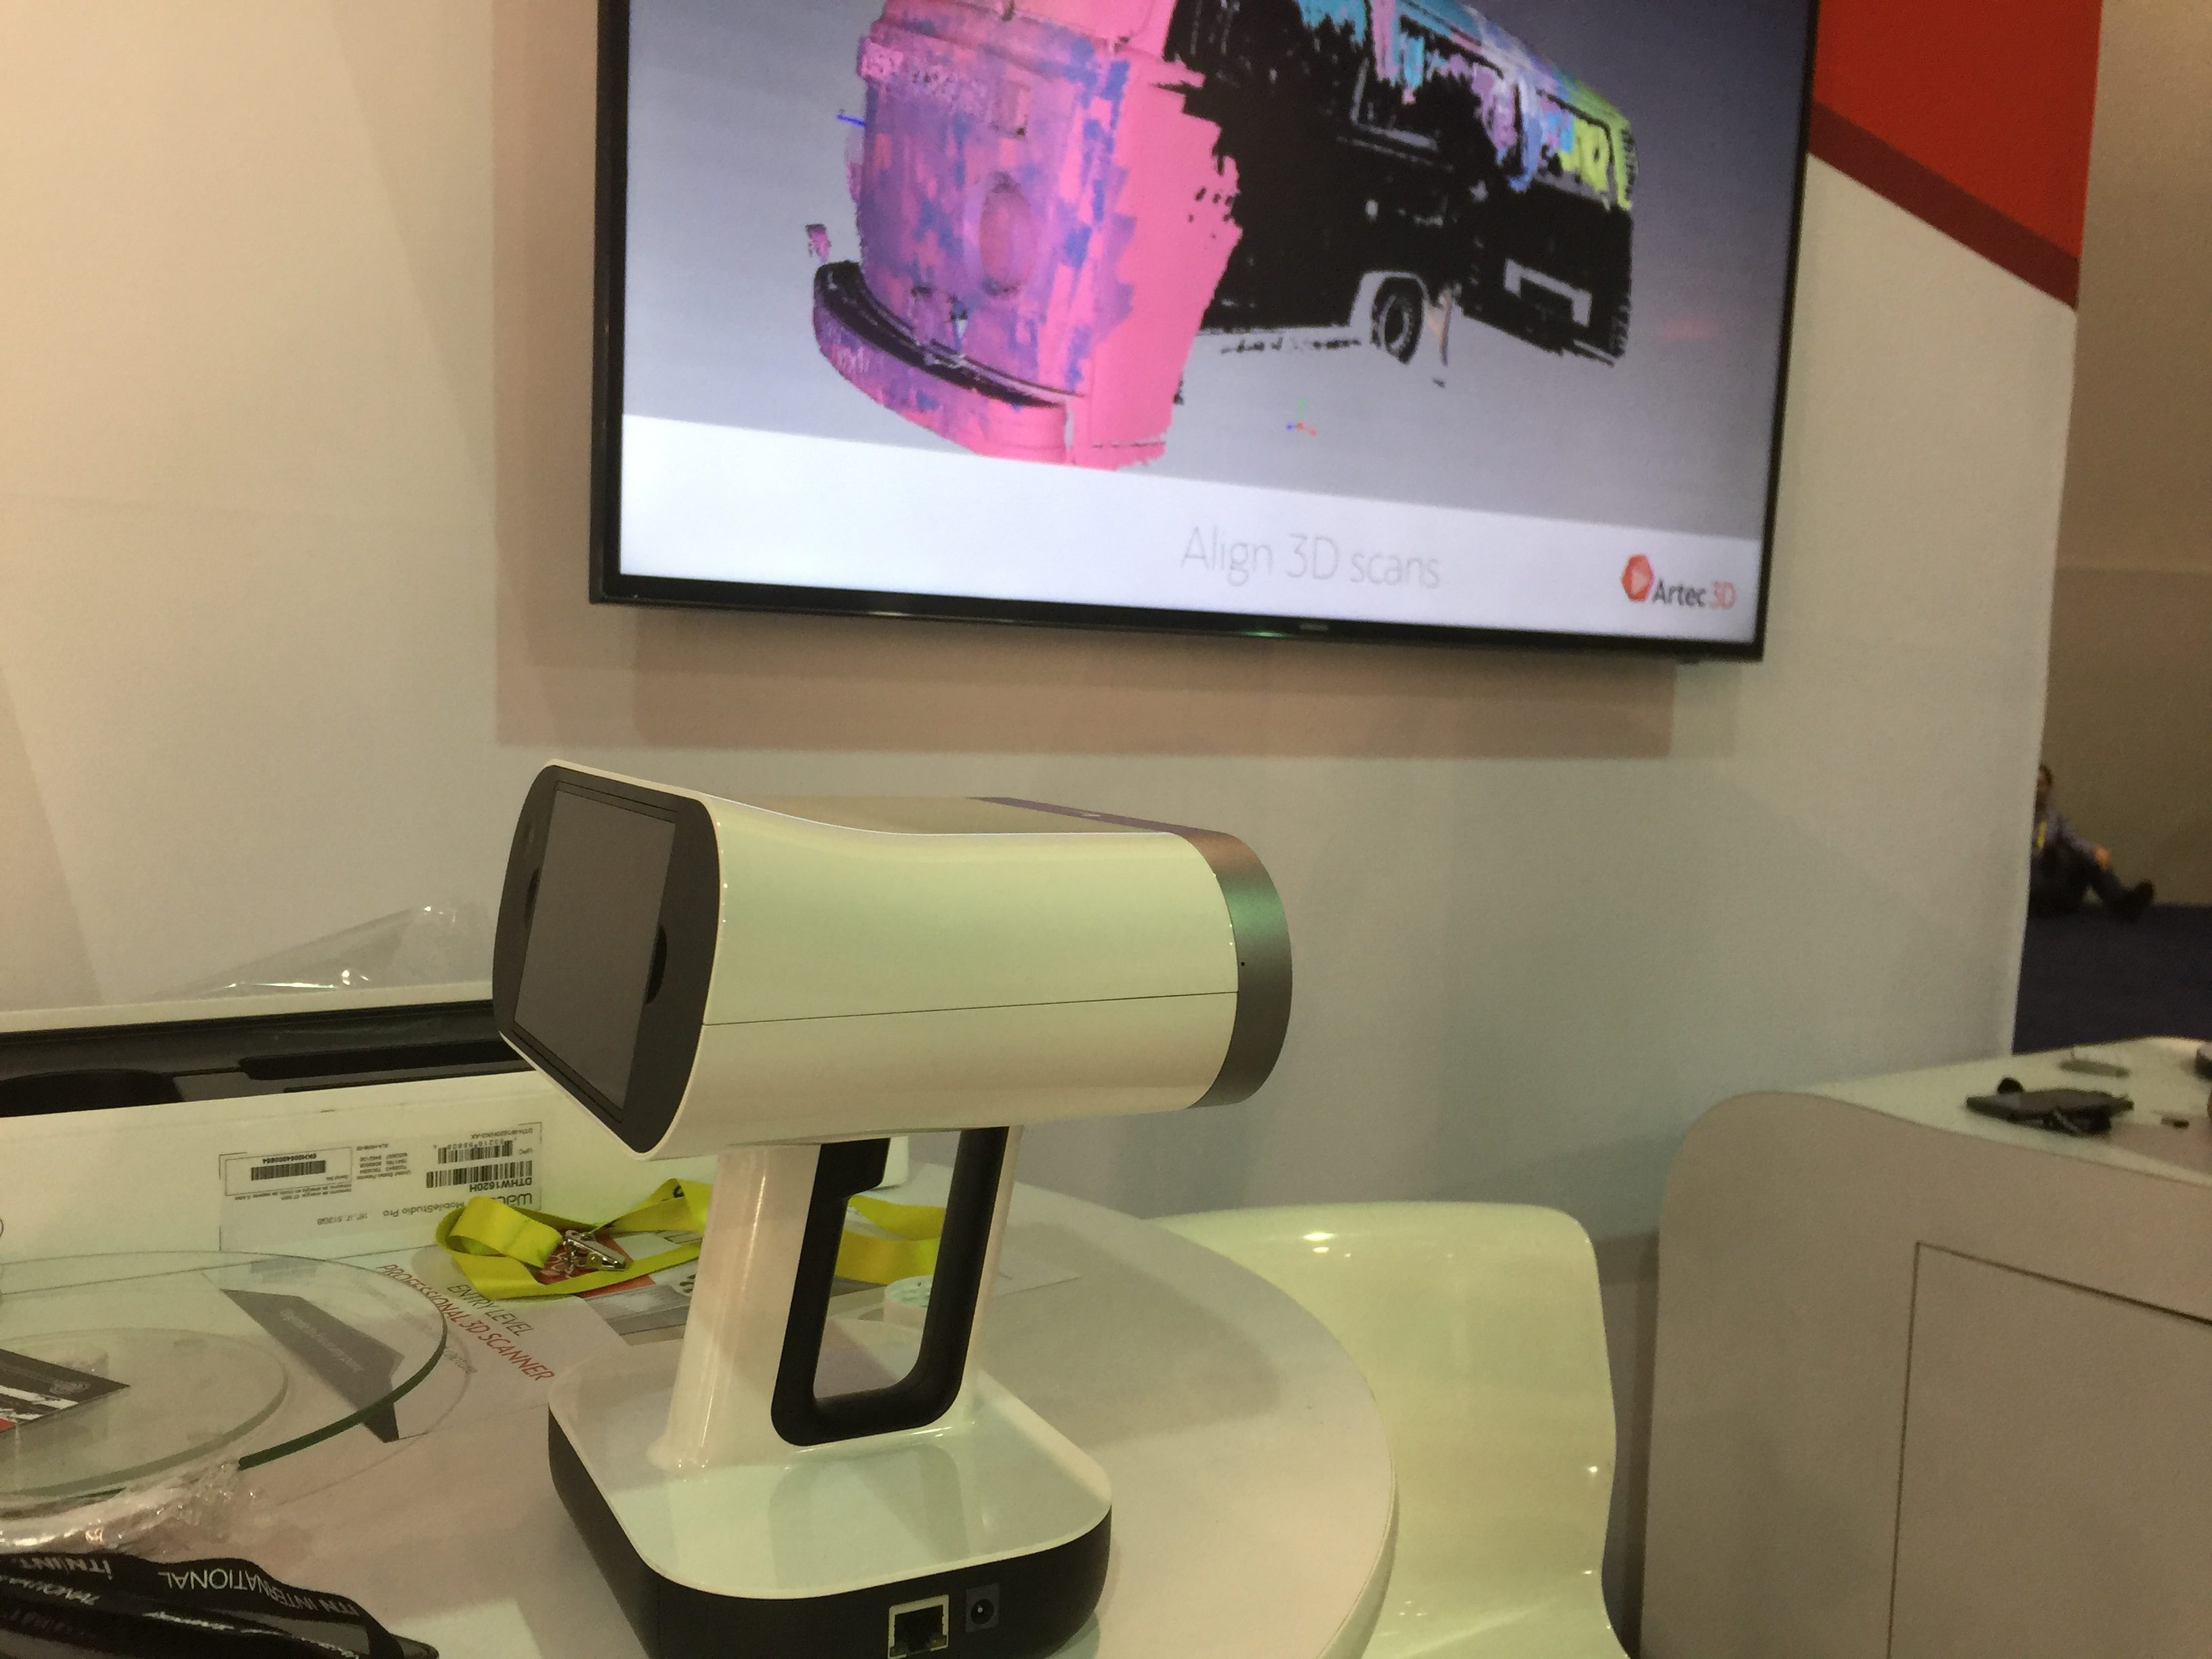 In Search Of Engineering Tech At Ces Digital Resources Circuit Design Software With Self Contained 2d Cad Engine The Artec 3d Leo Enables Scanning